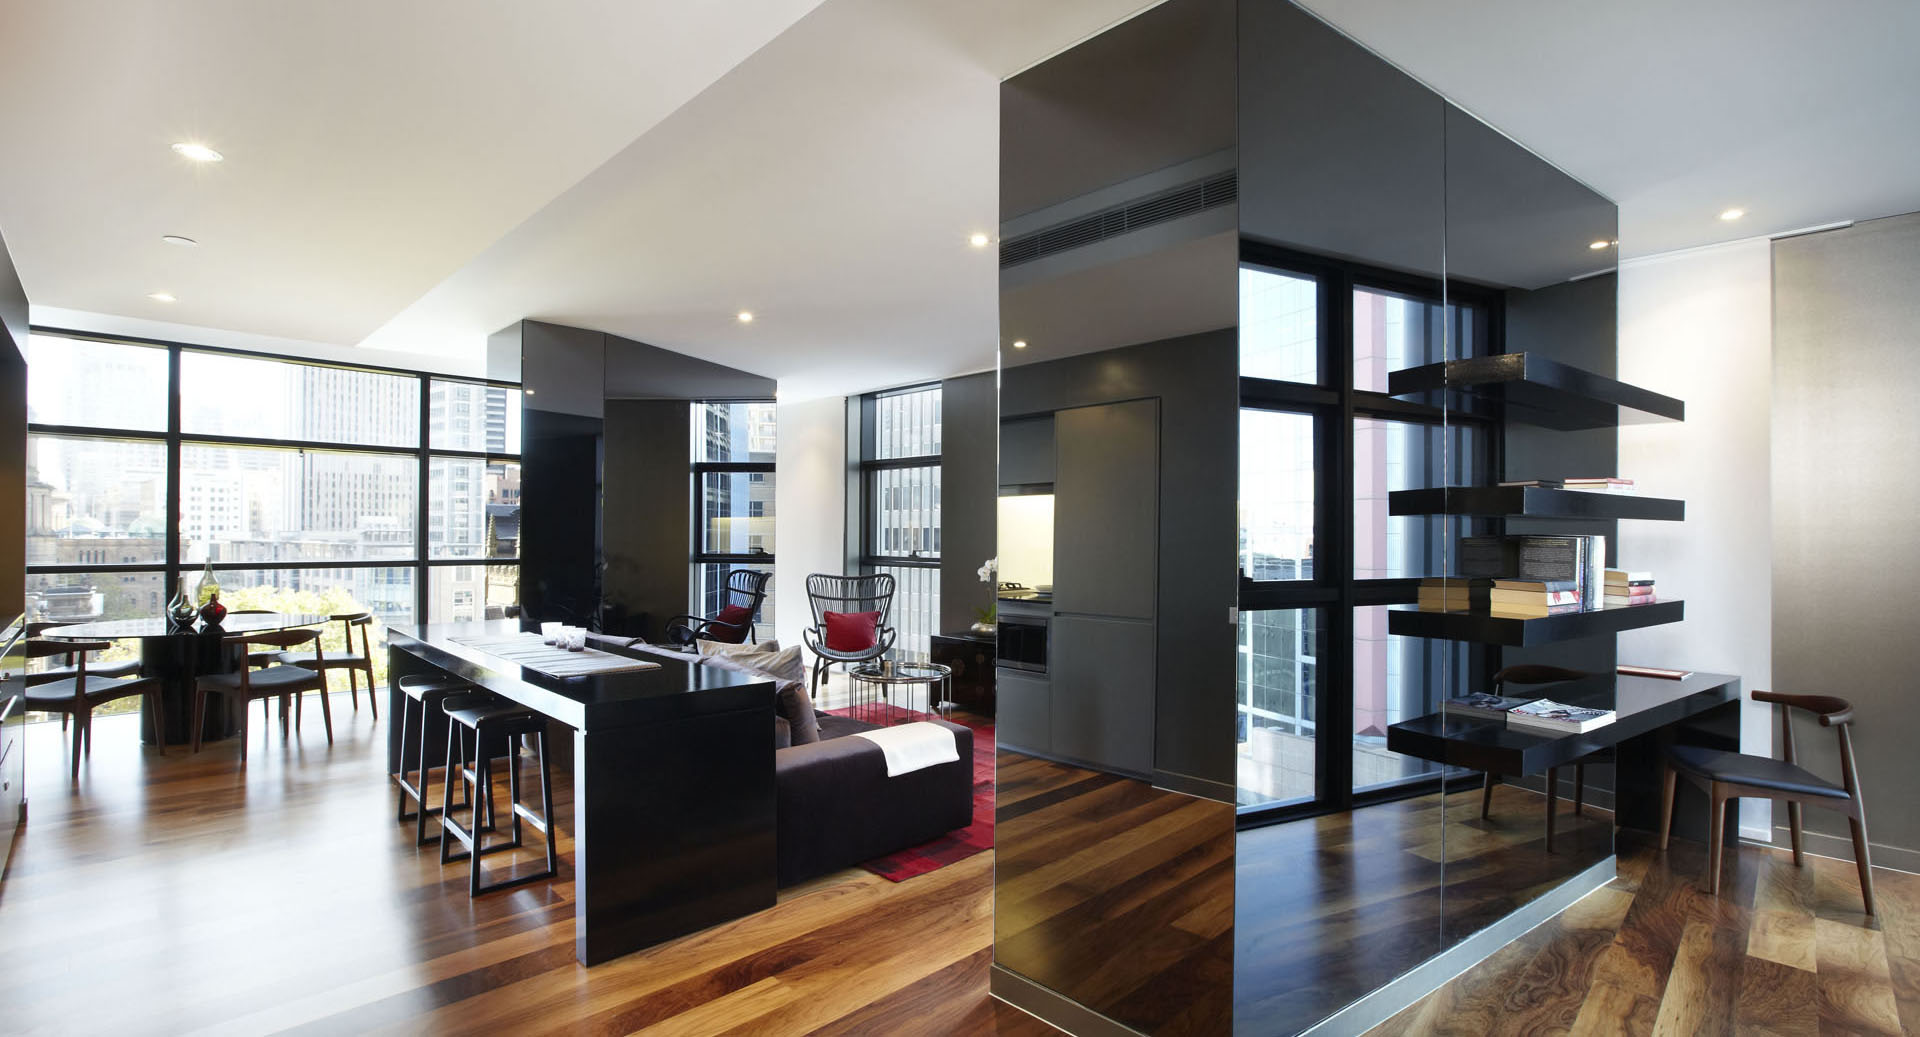 Contemporary apartment designs in sydney idesignarch for Apt design studio